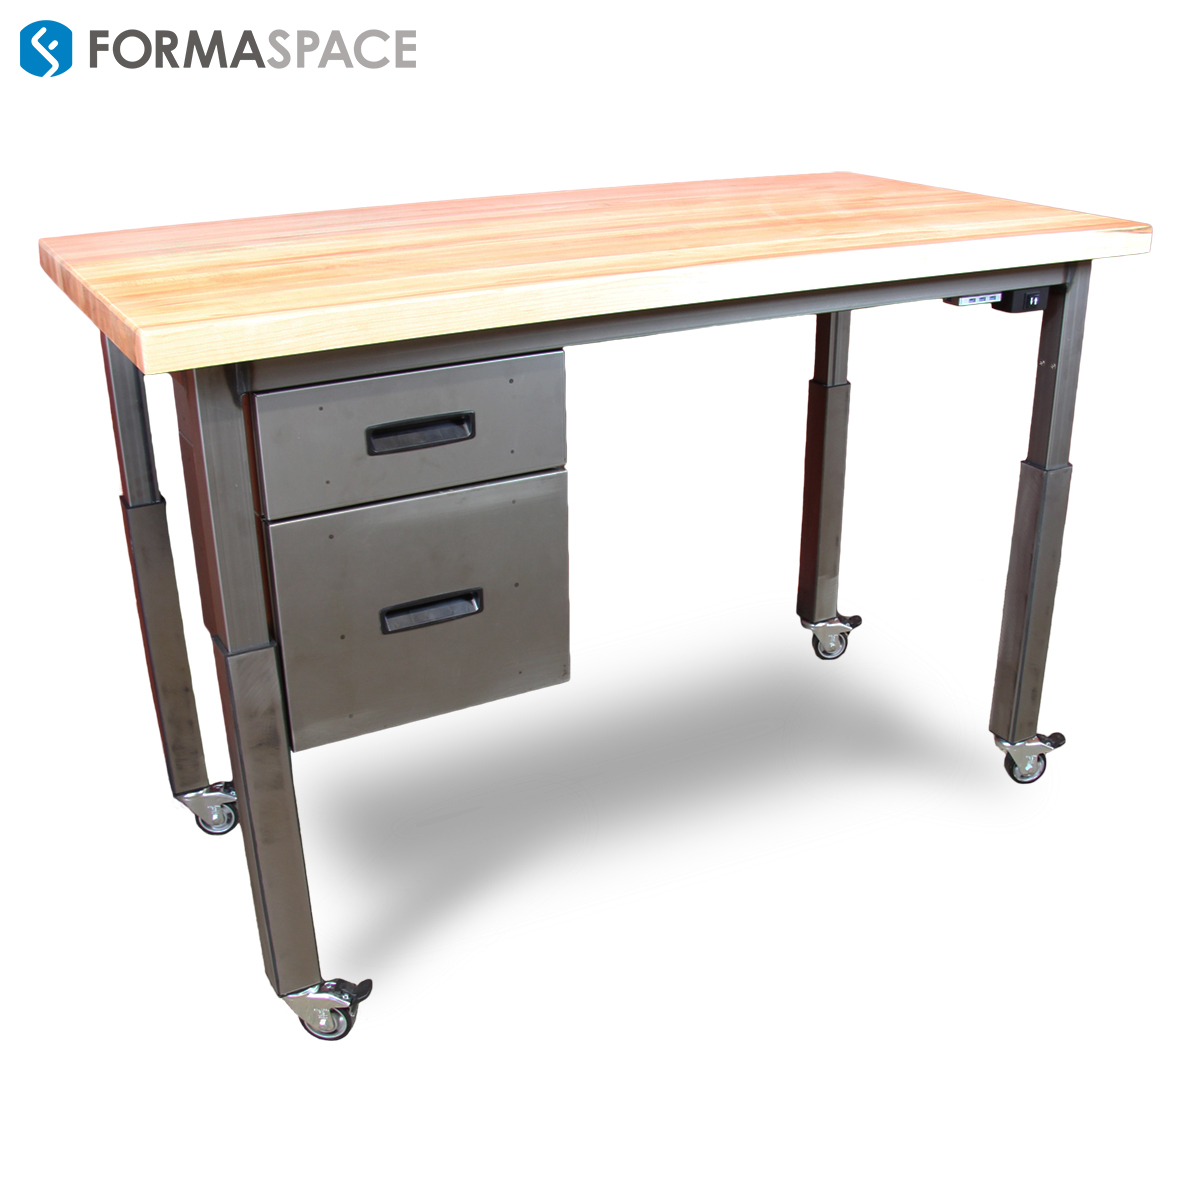 Formaspace Sit-to-Stand Maple Top Desk